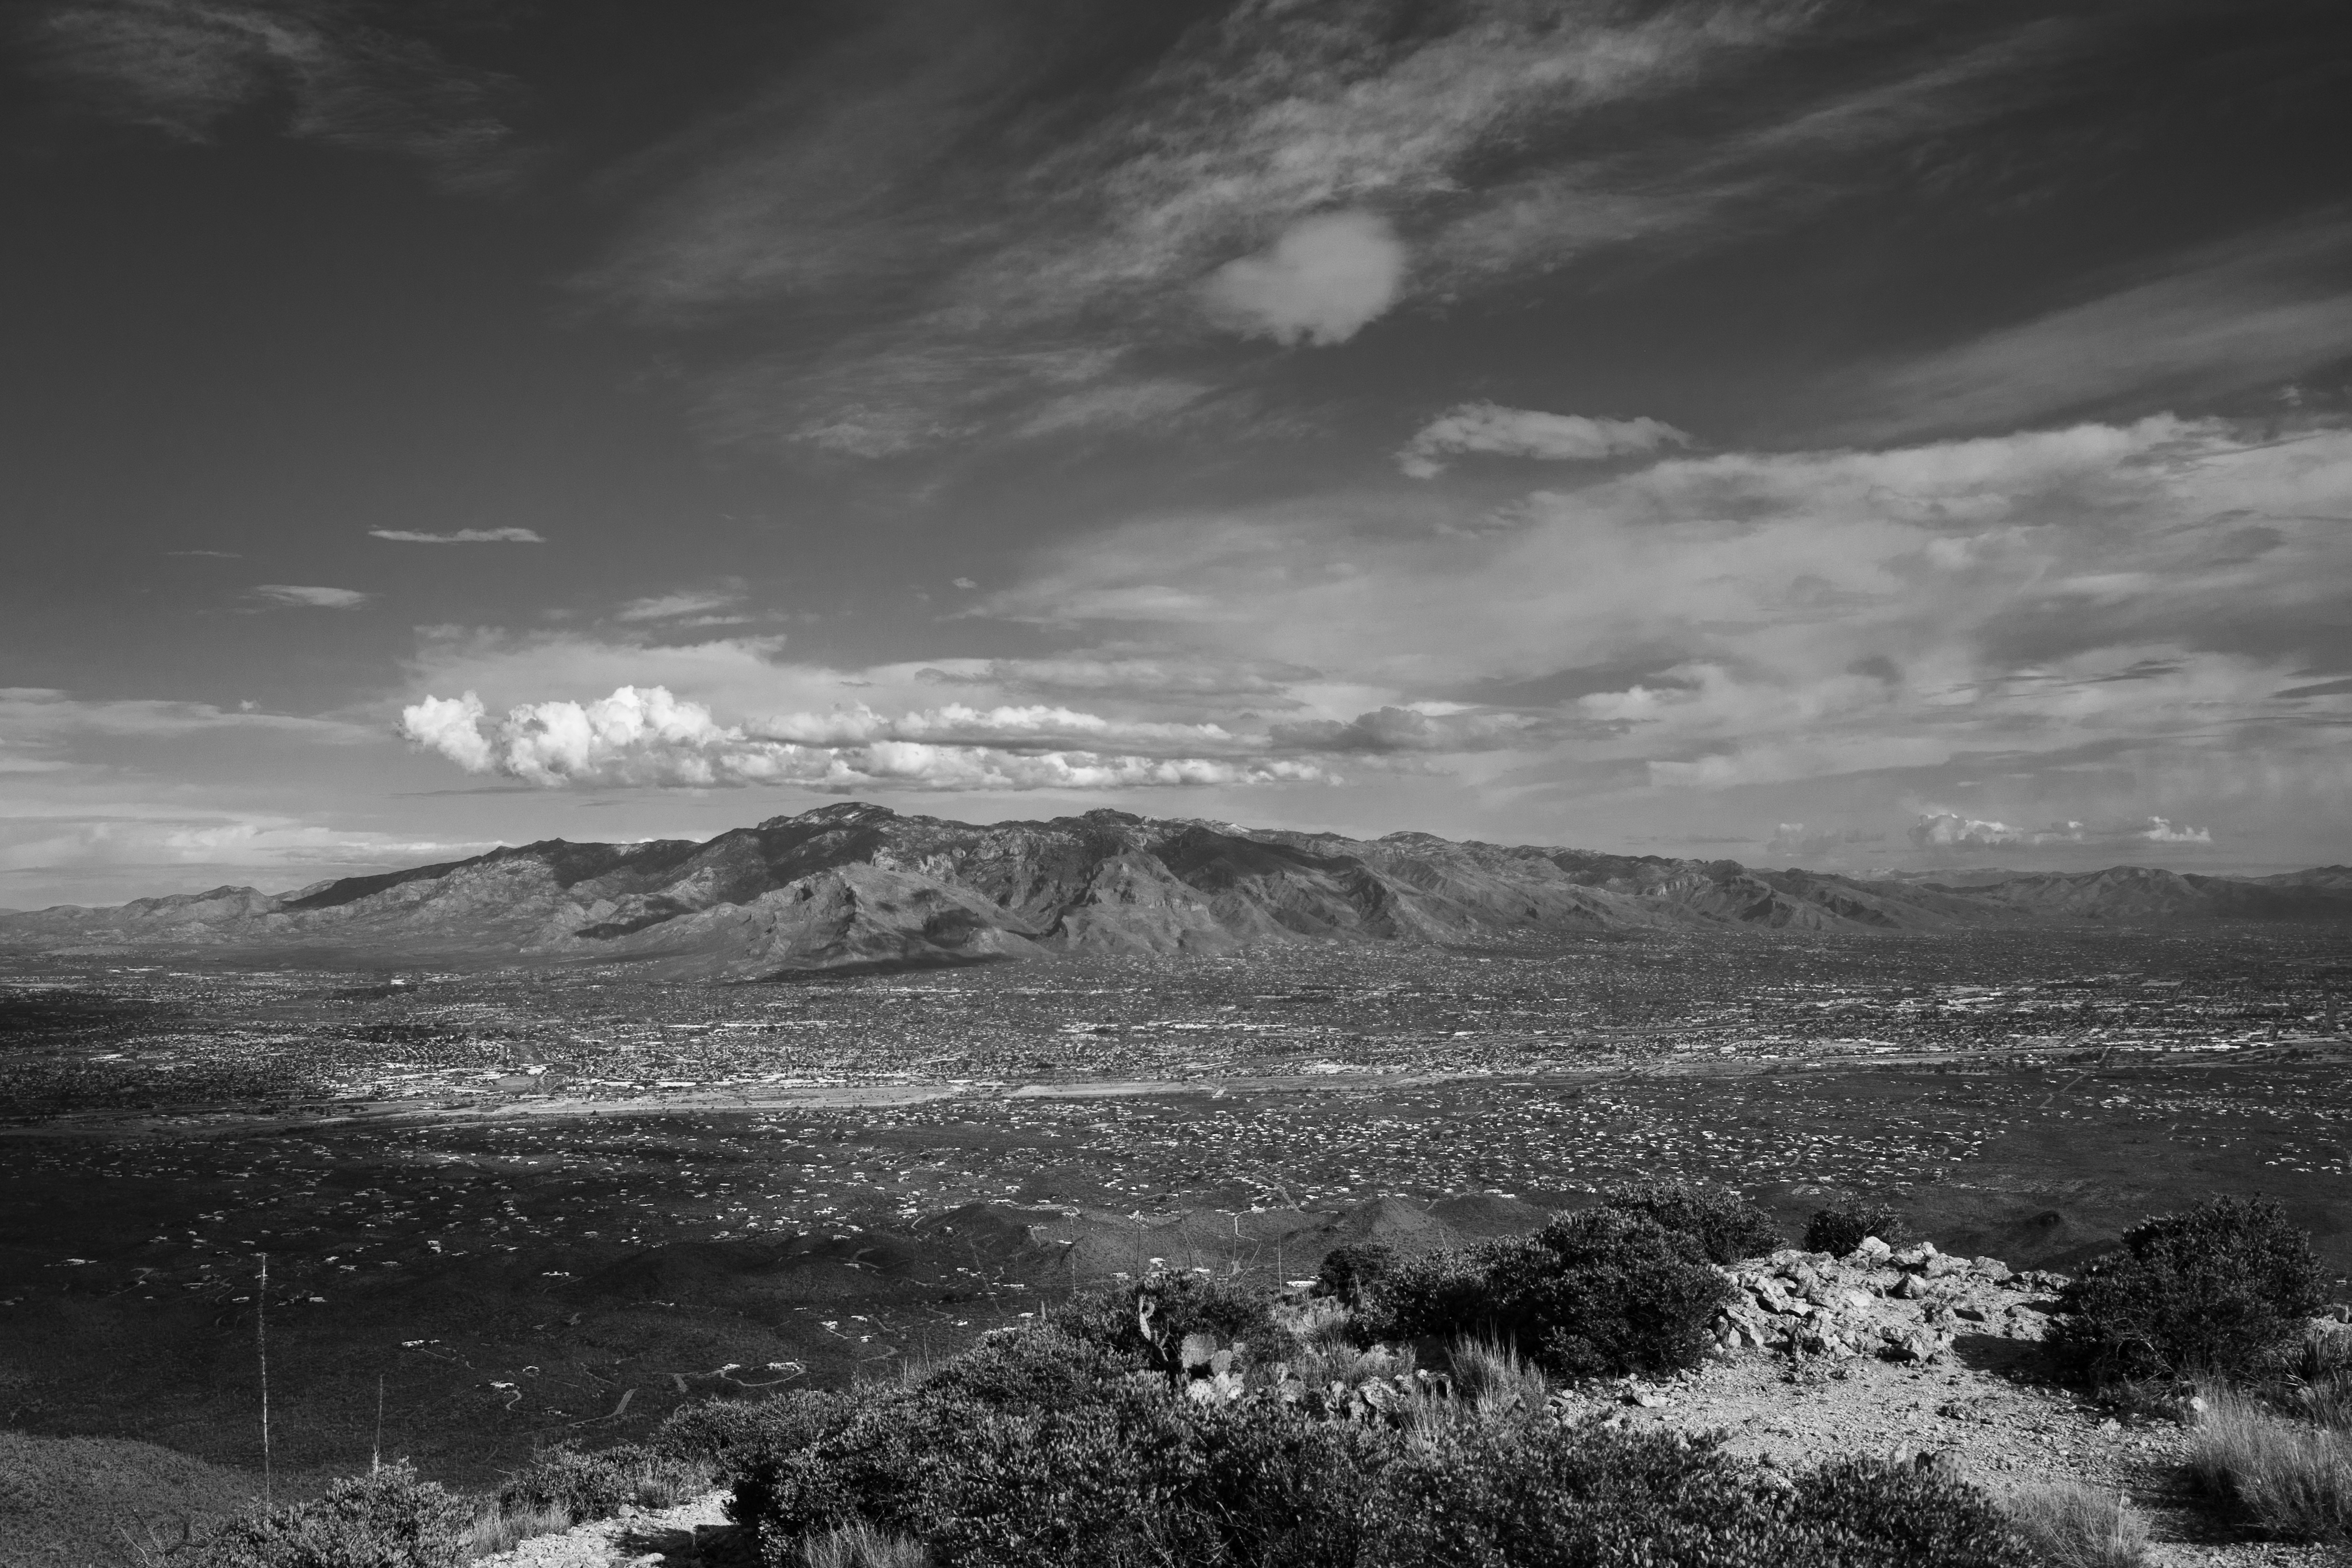 A view from the top of Wasson Peak in Tucson, Arizona. Four-hour round-trip hike with a brief picnic break at the peak.